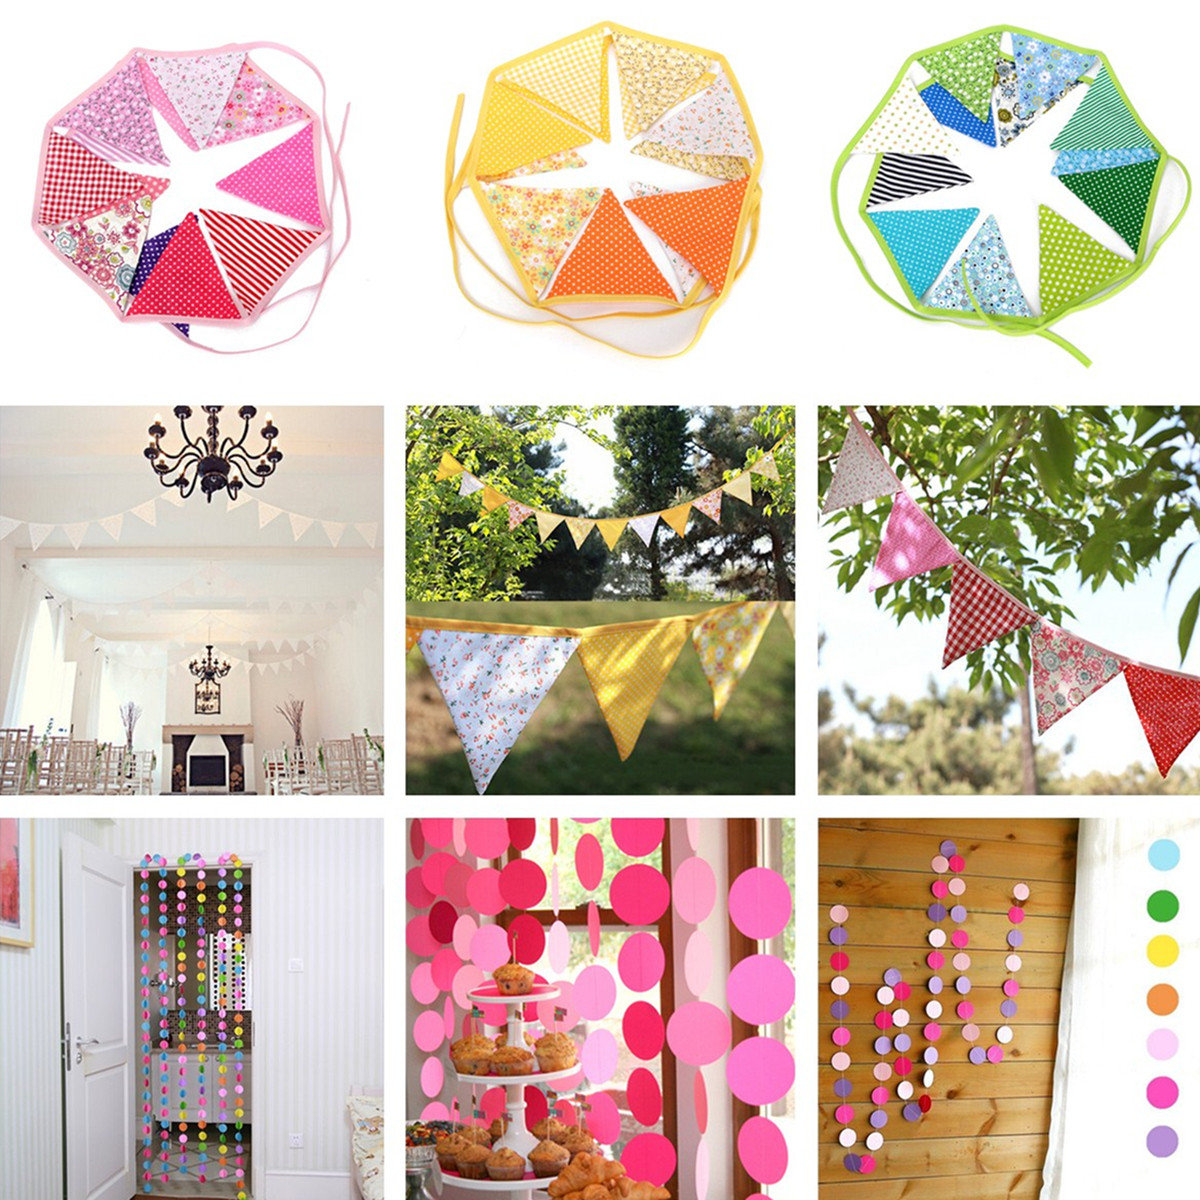 Lovely Handmade Fabric Flags Buntings Pennants Wedding Birthday Party Decoration Flag Bunting